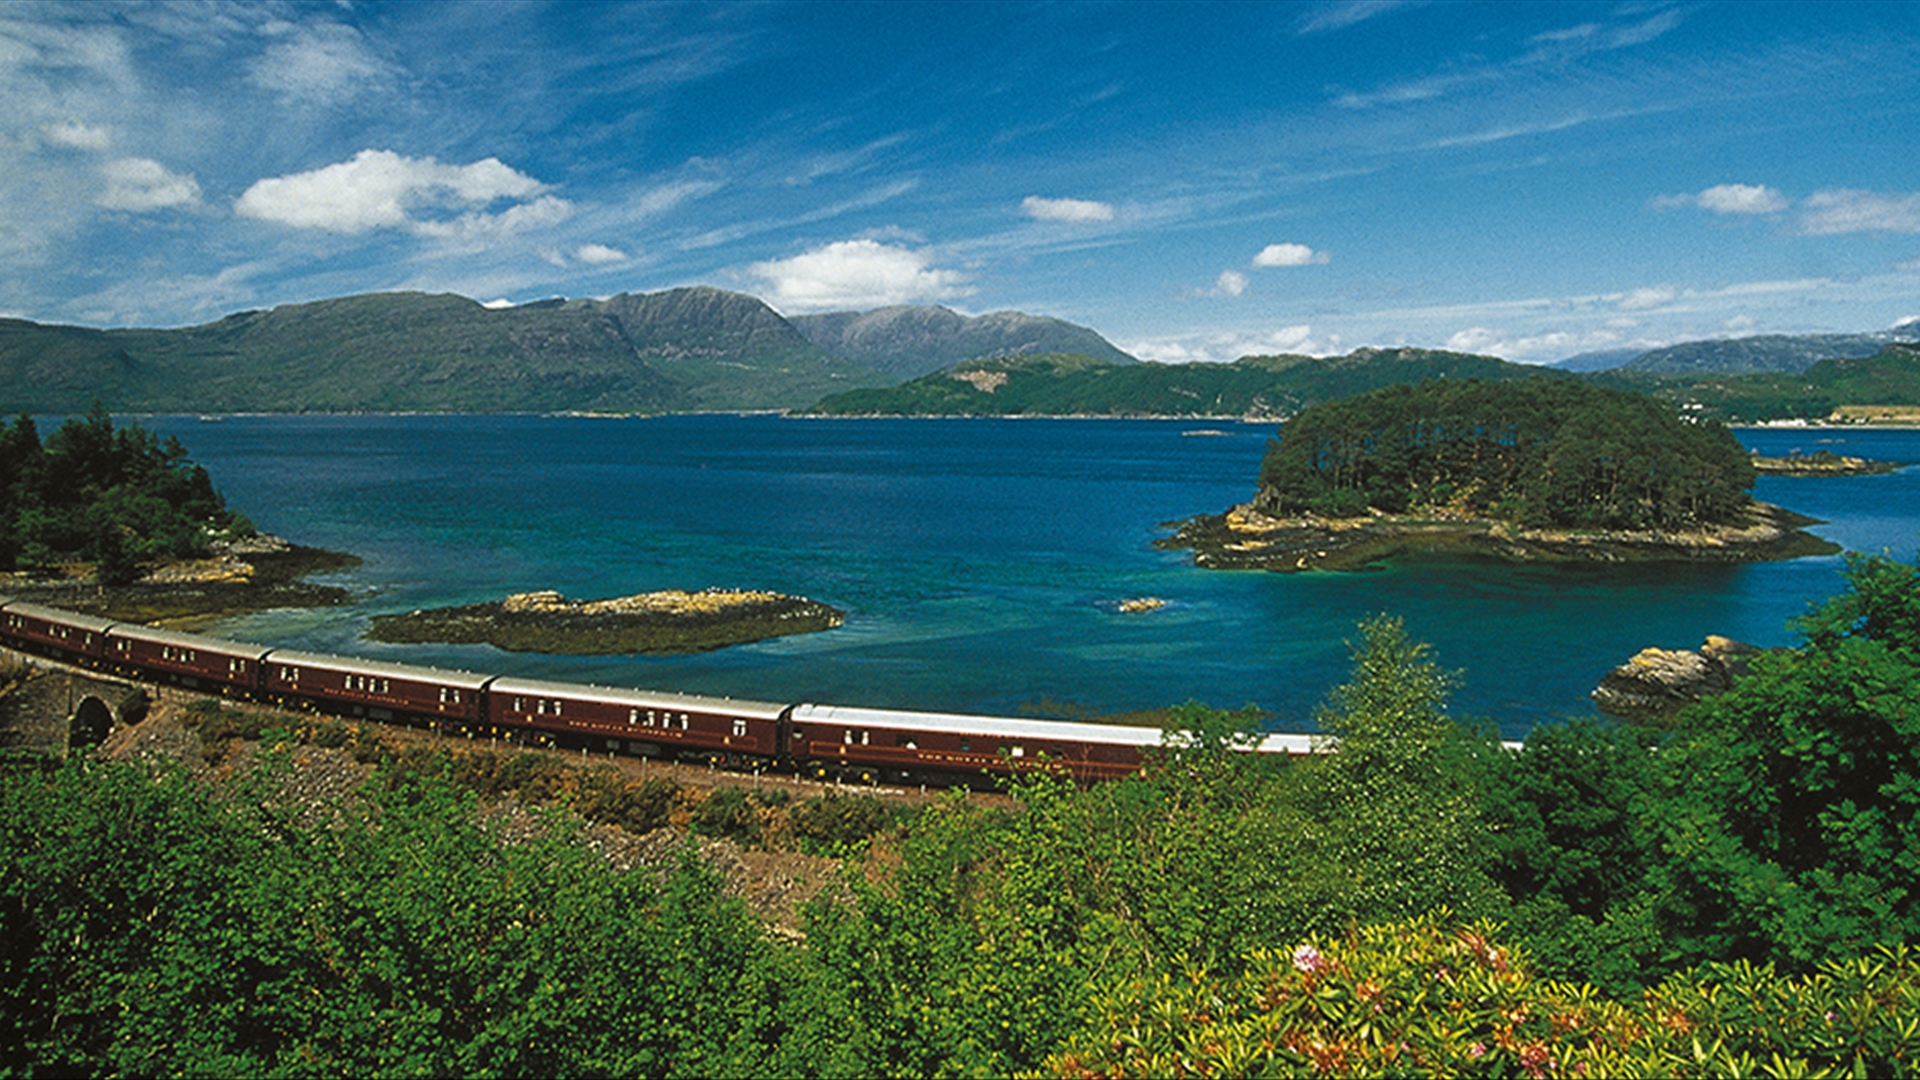 Royal Scotsman Im Royal Scotsman durch Schottland (2019/2020)